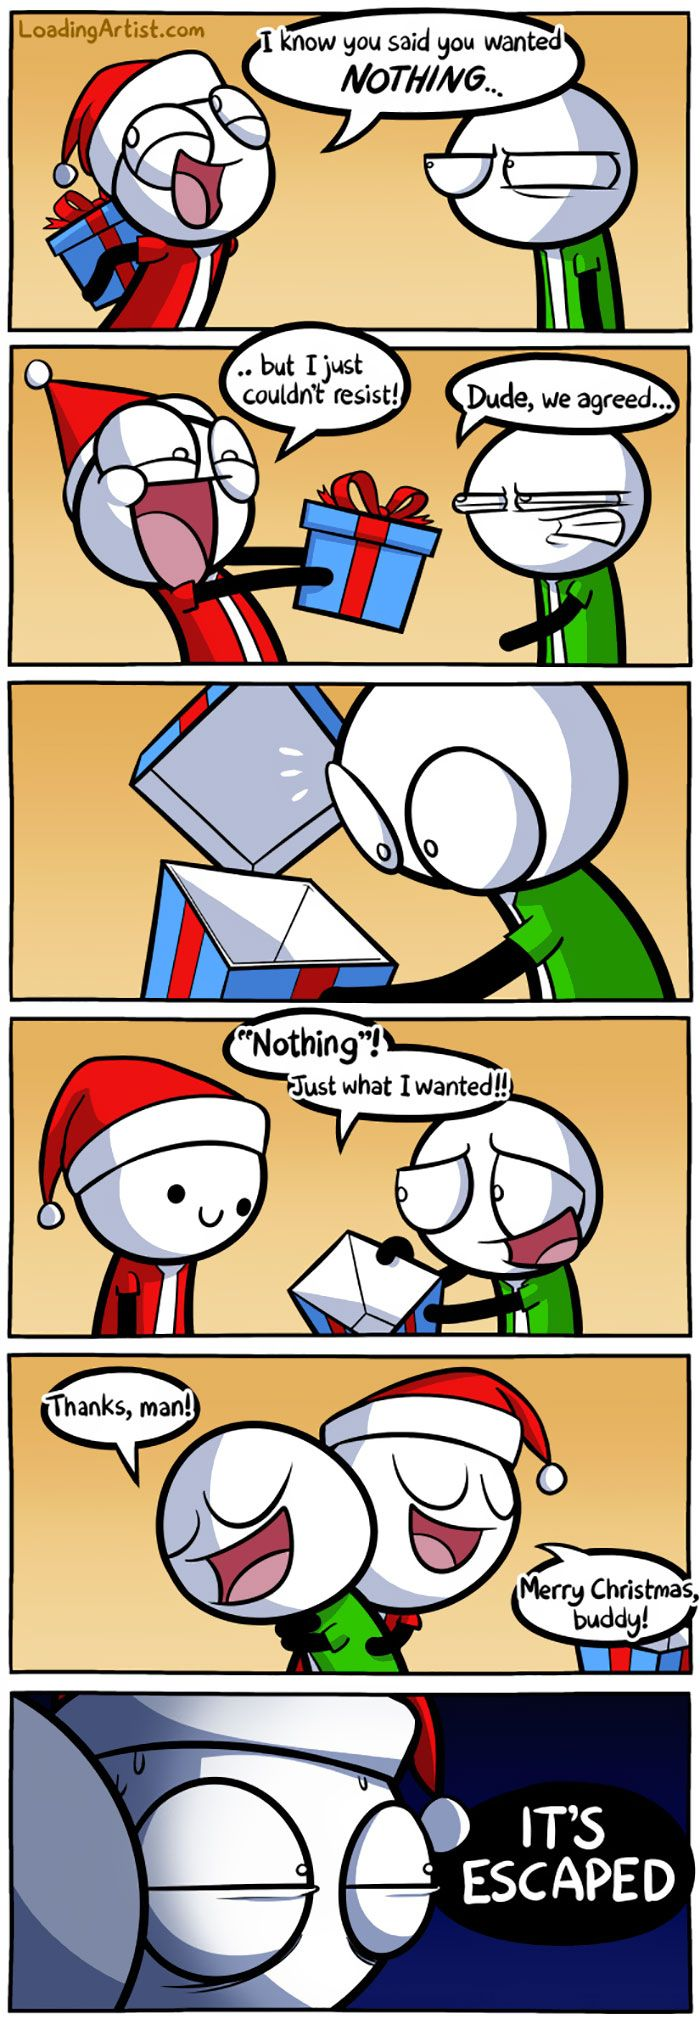 125 Of The Funniest Christmas Comics Ever